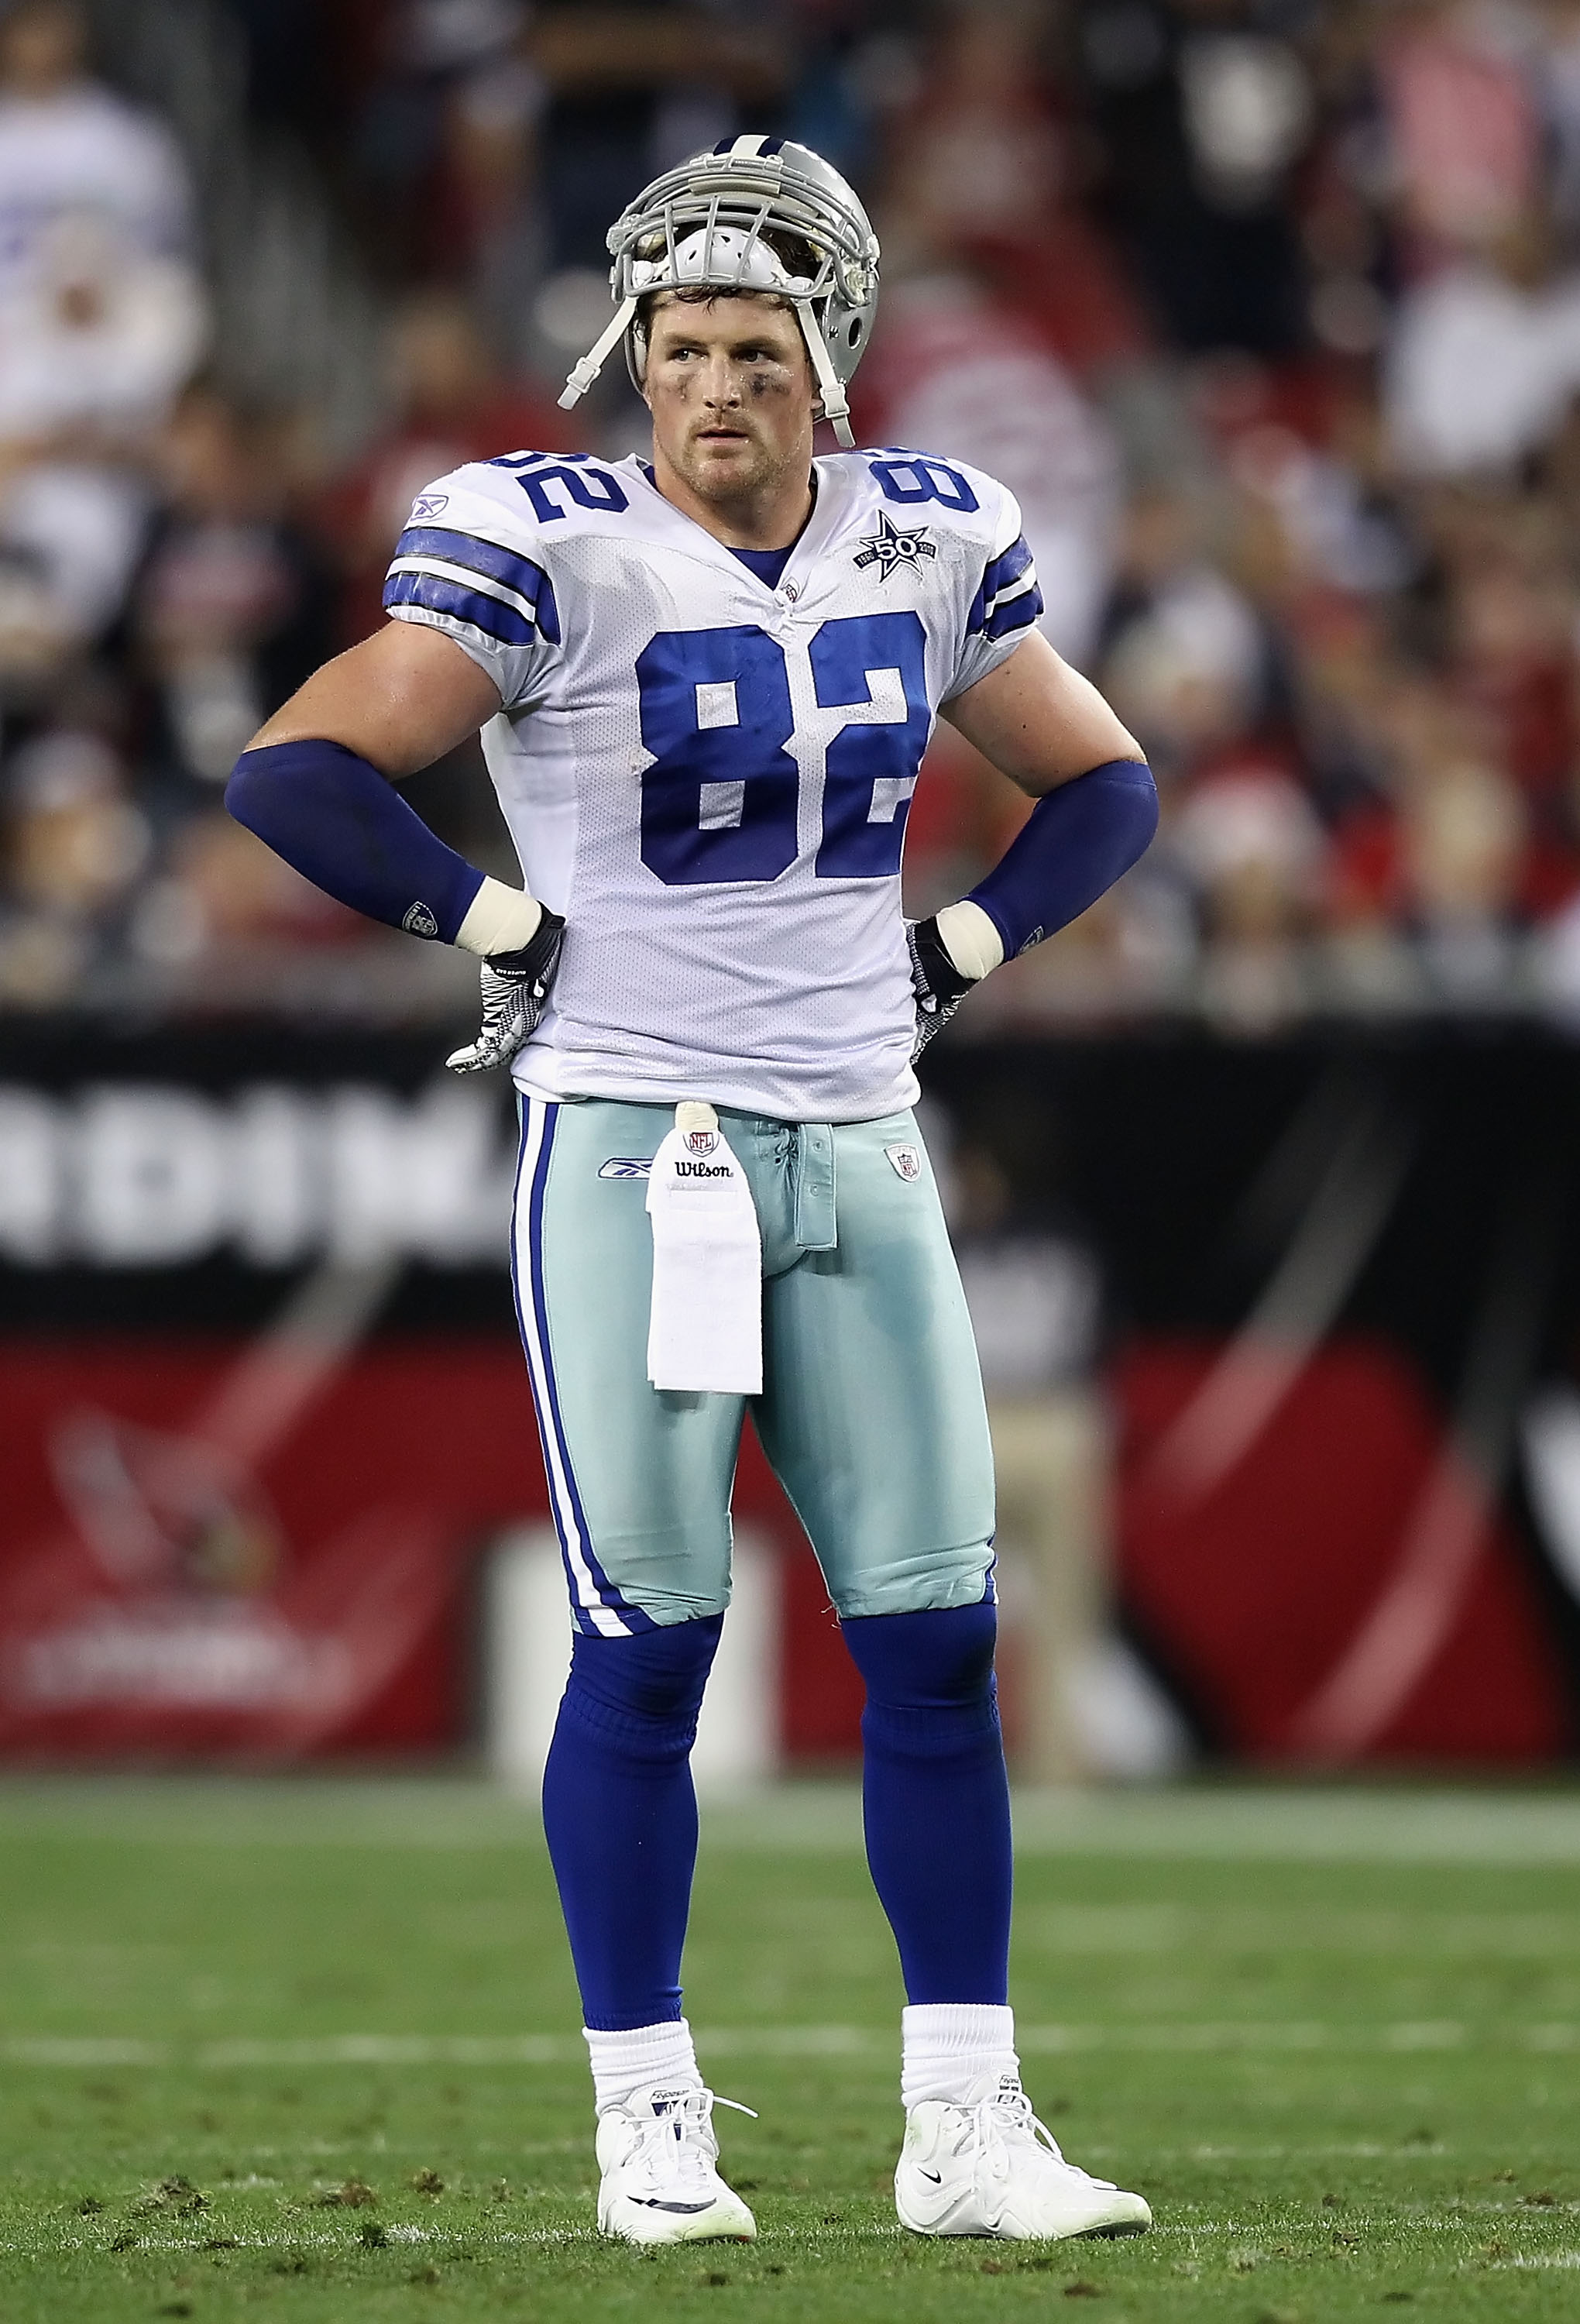 GLENDALE, AZ - DECEMBER 25:  Tight end Jason Witten #82 of the Dallas Cowboys stands on the field during the NFL game against the Arizona Cardinals at the University of Phoenix Stadium on December 25, 2010 in Glendale, Arizona. The Cardinals defeated the